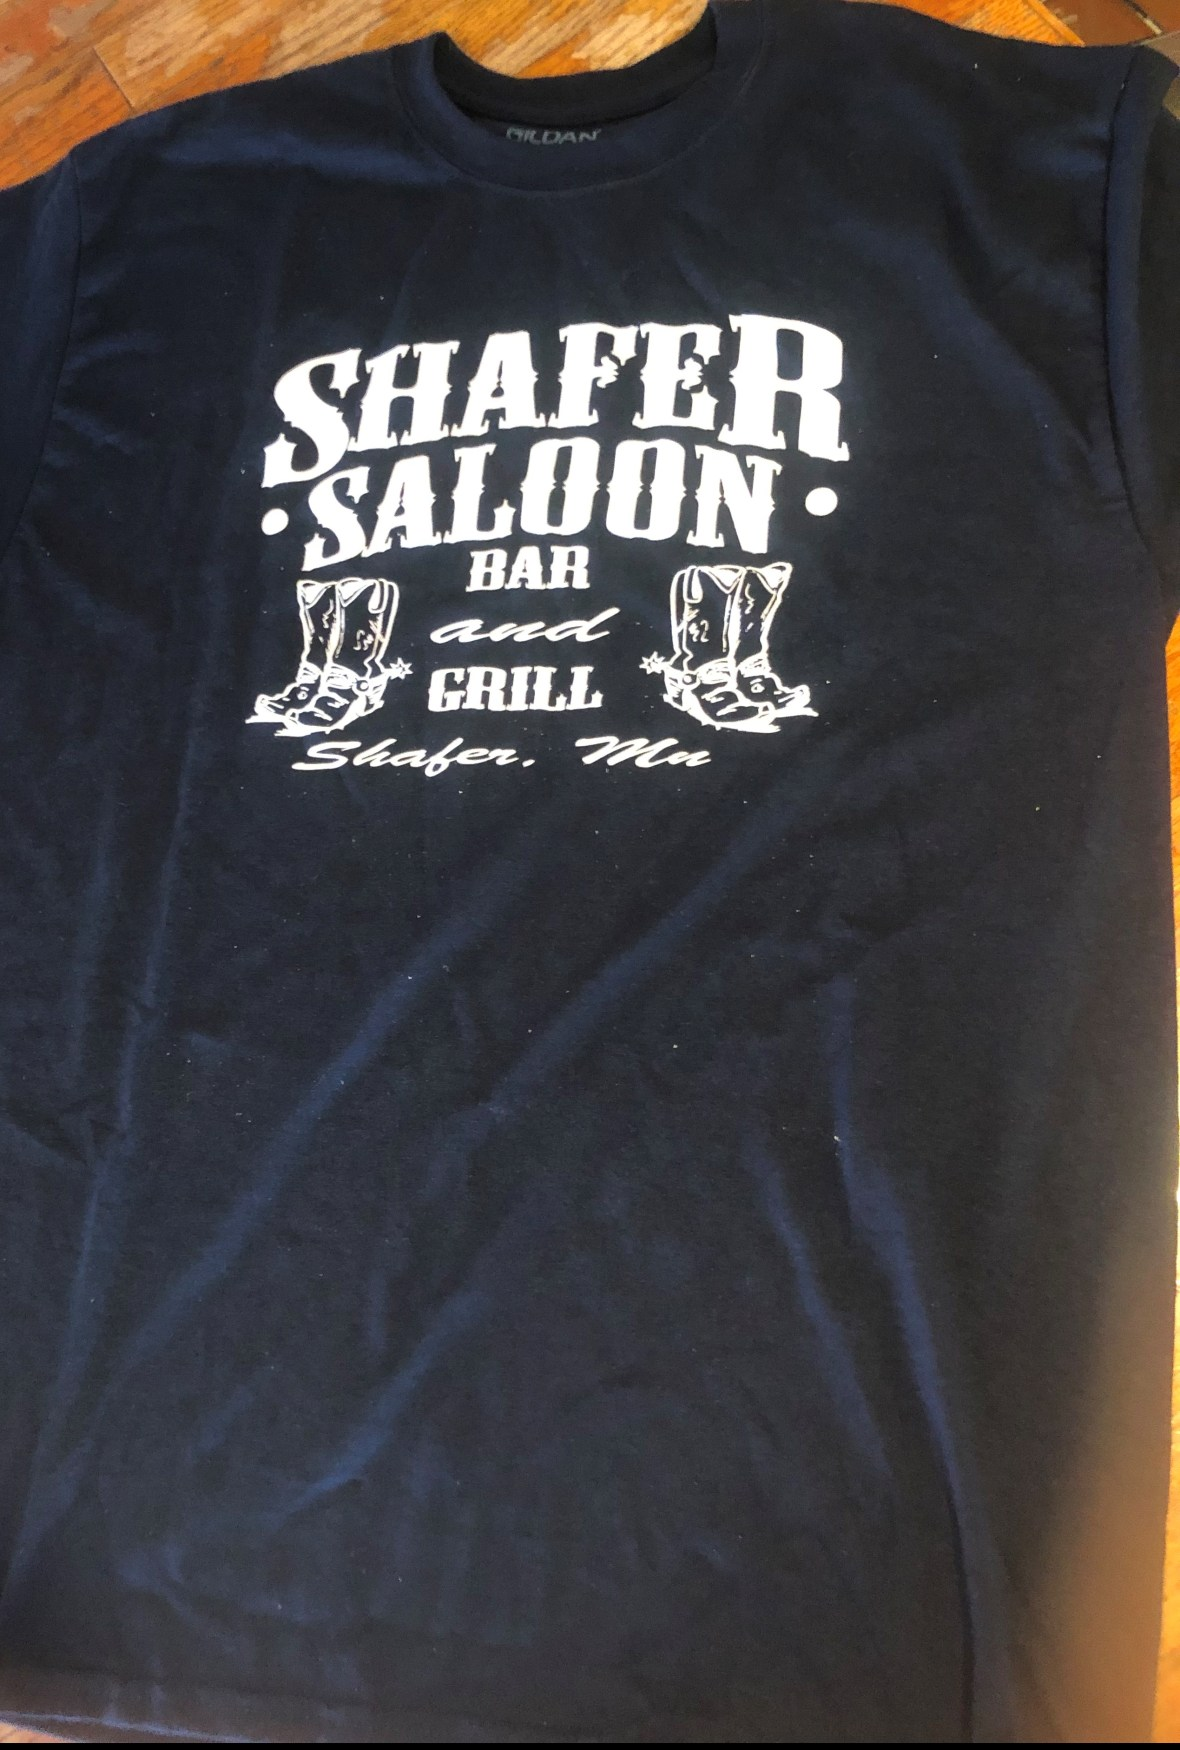 Shafer Saloon T-Shits